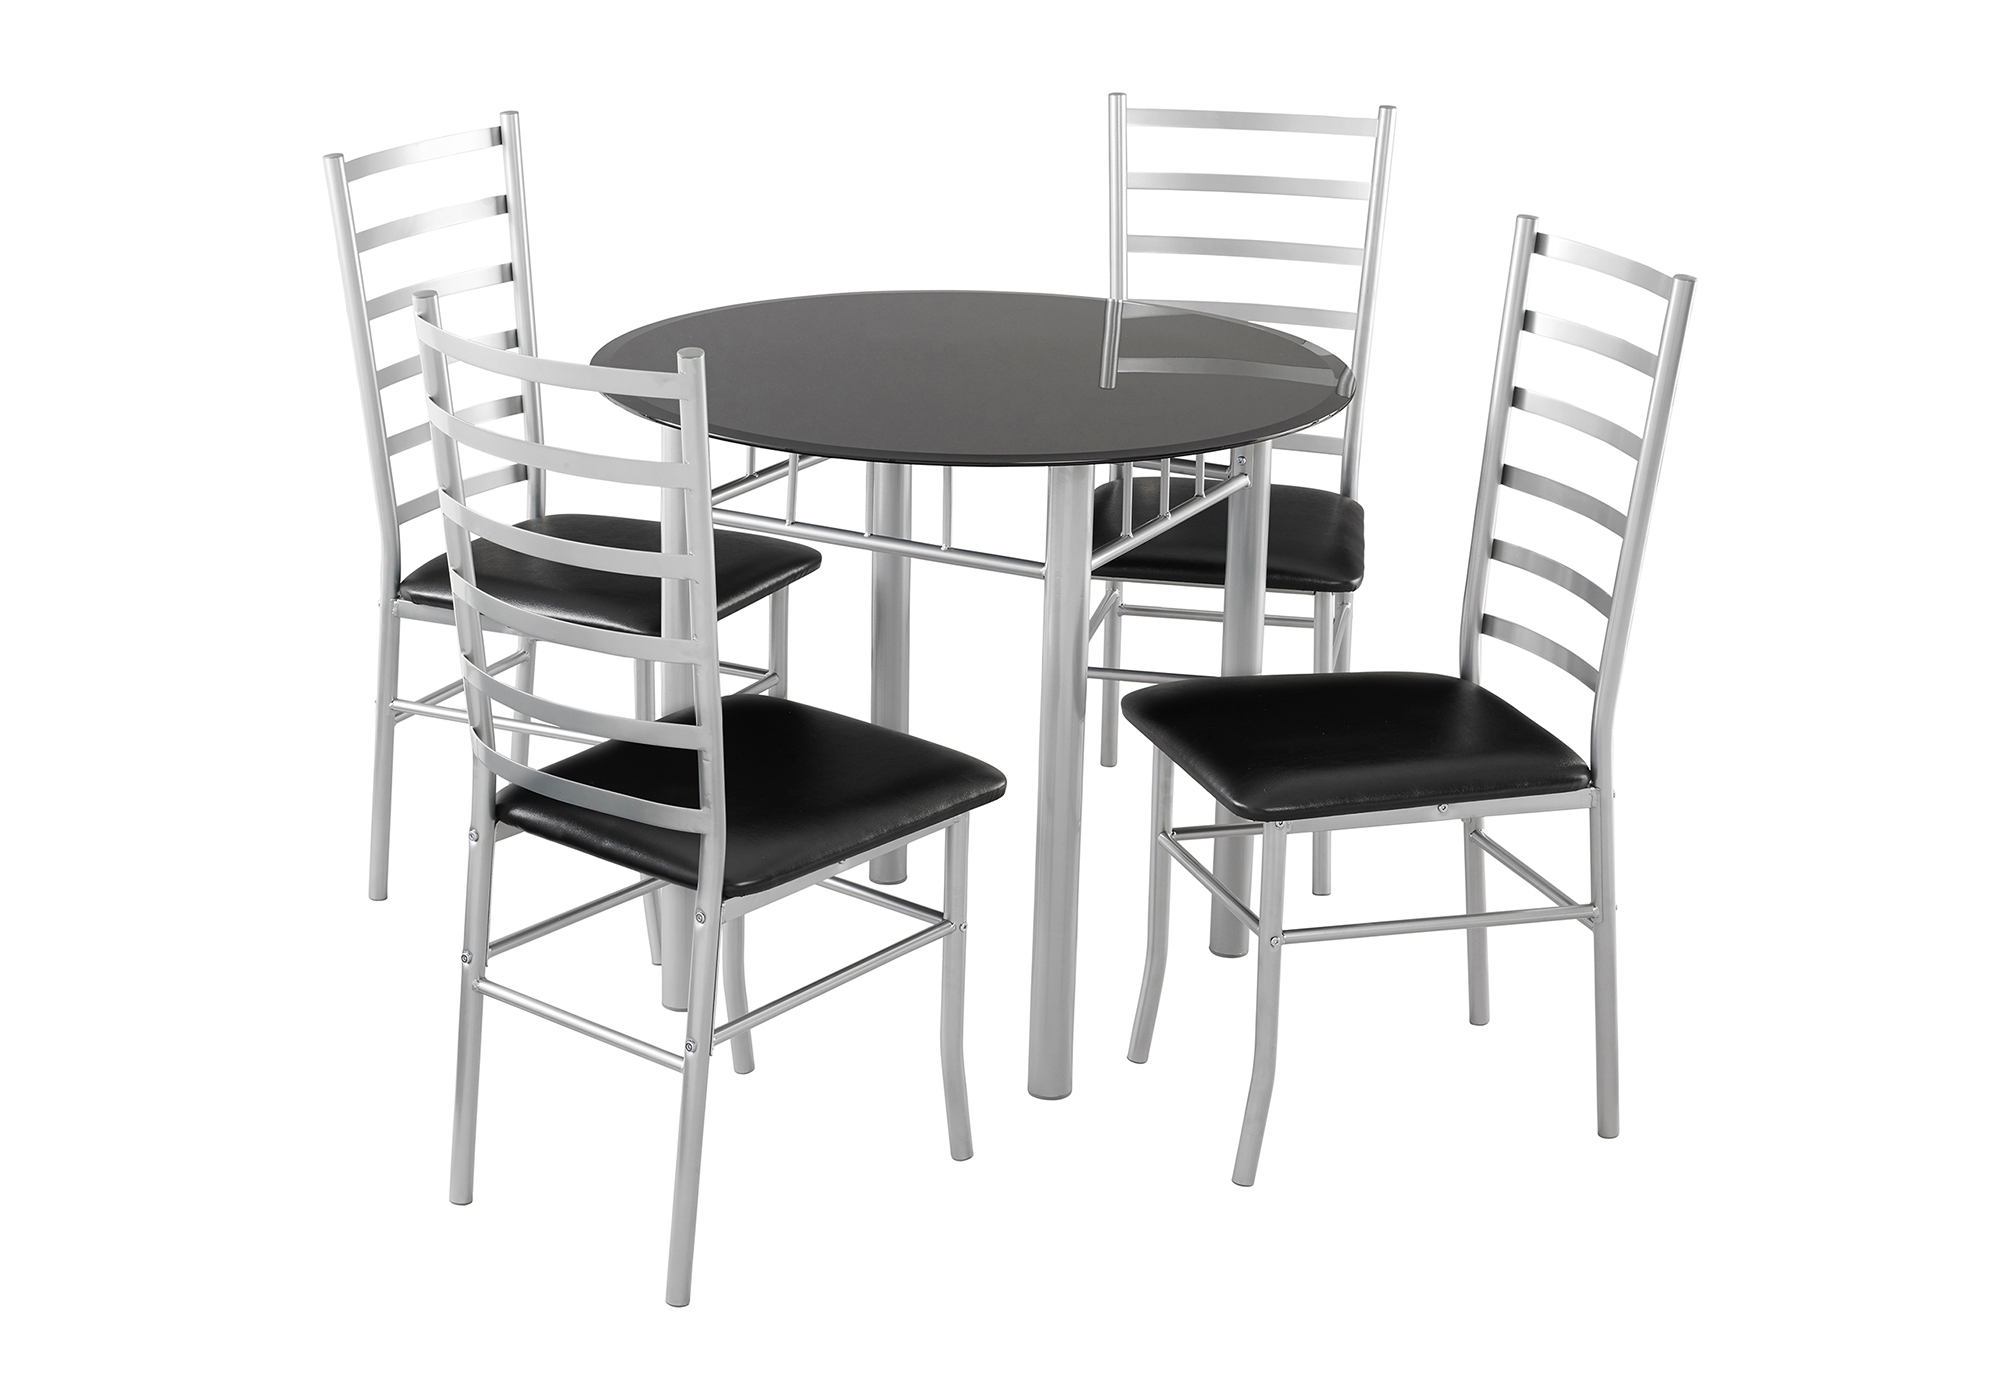 2017 Lincoln Dining Set 4 Seater – Black Glass Dining Table & 4 Chairs Intended For Black Glass Dining Tables (View 10 of 25)